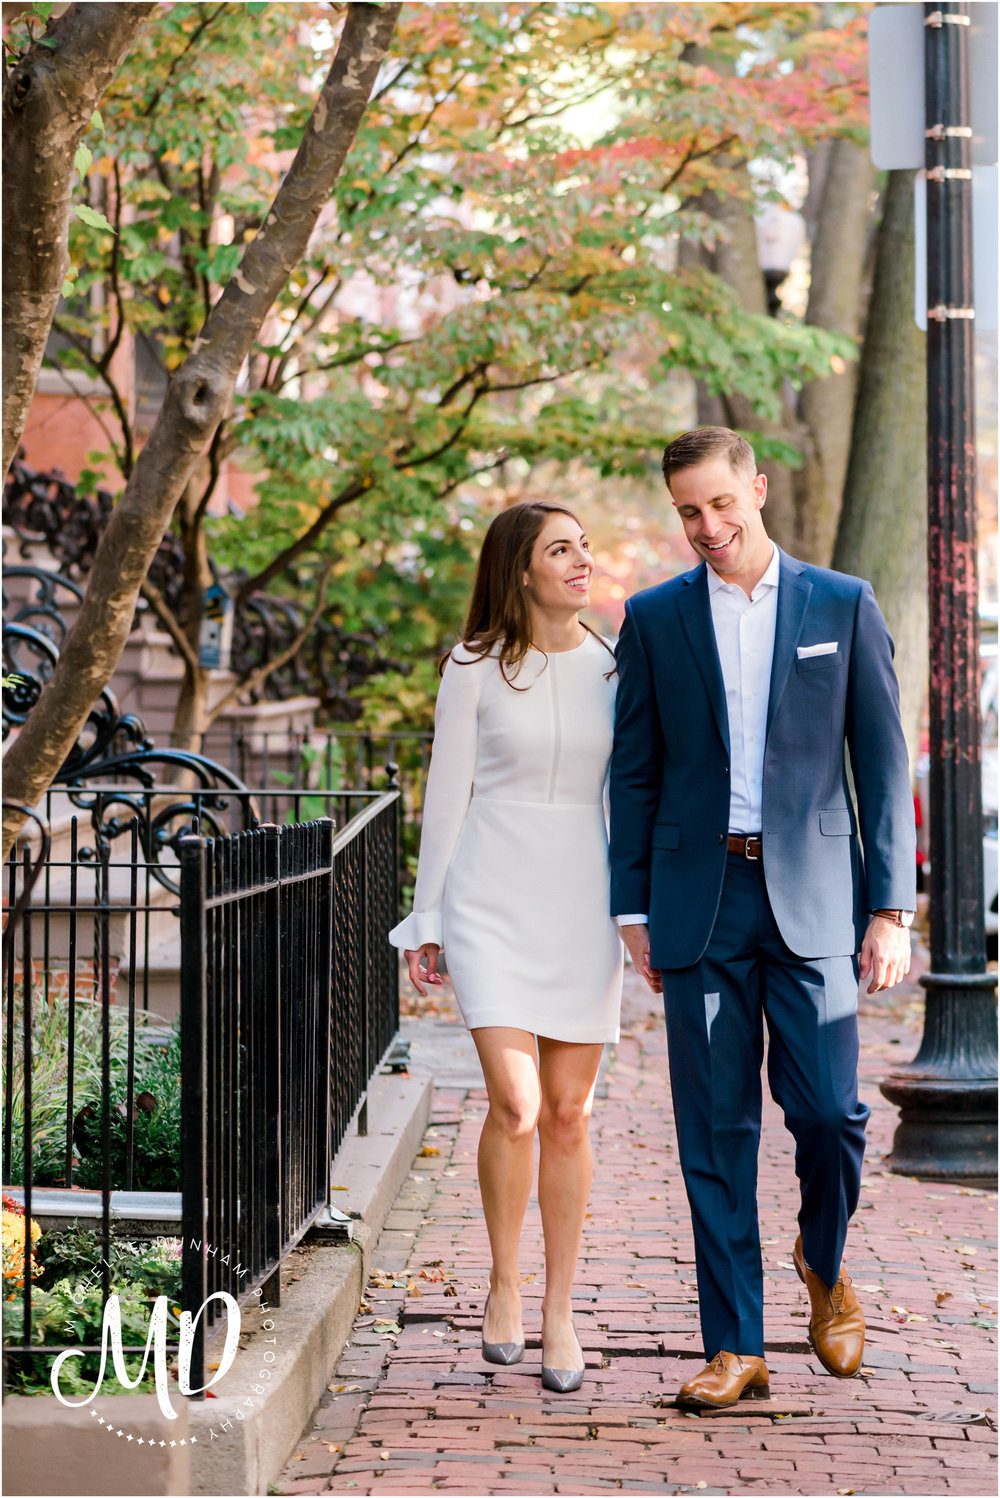 Michelle-Dunham-Photography-Engagement-South-End-Boston-2.jpg